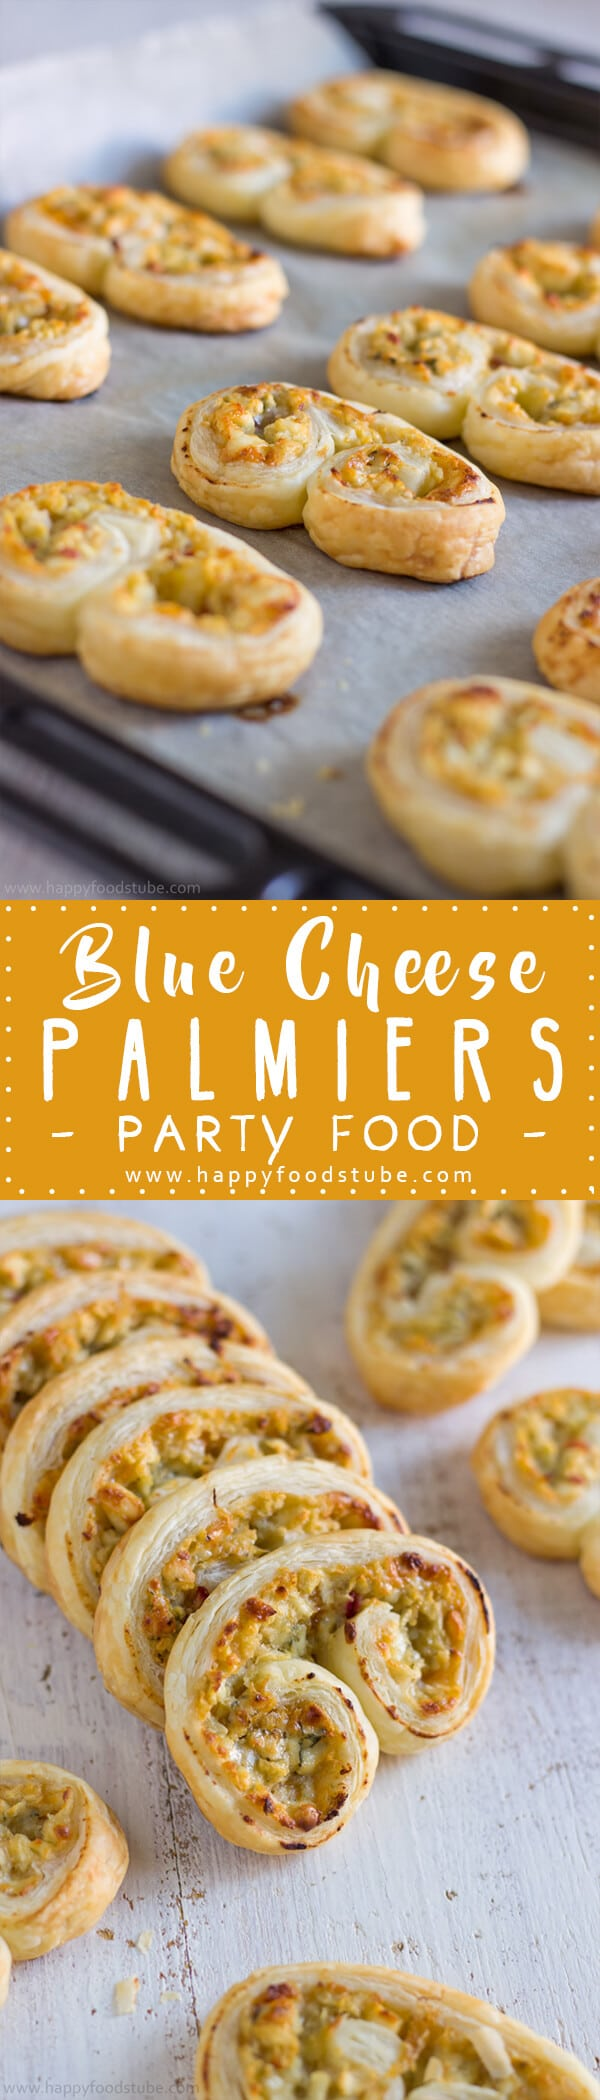 Blue Cheese Palmiers Recipe - This quick finger food recipe takes less than 30 minutes & will surprise you with its savory & sweet filling